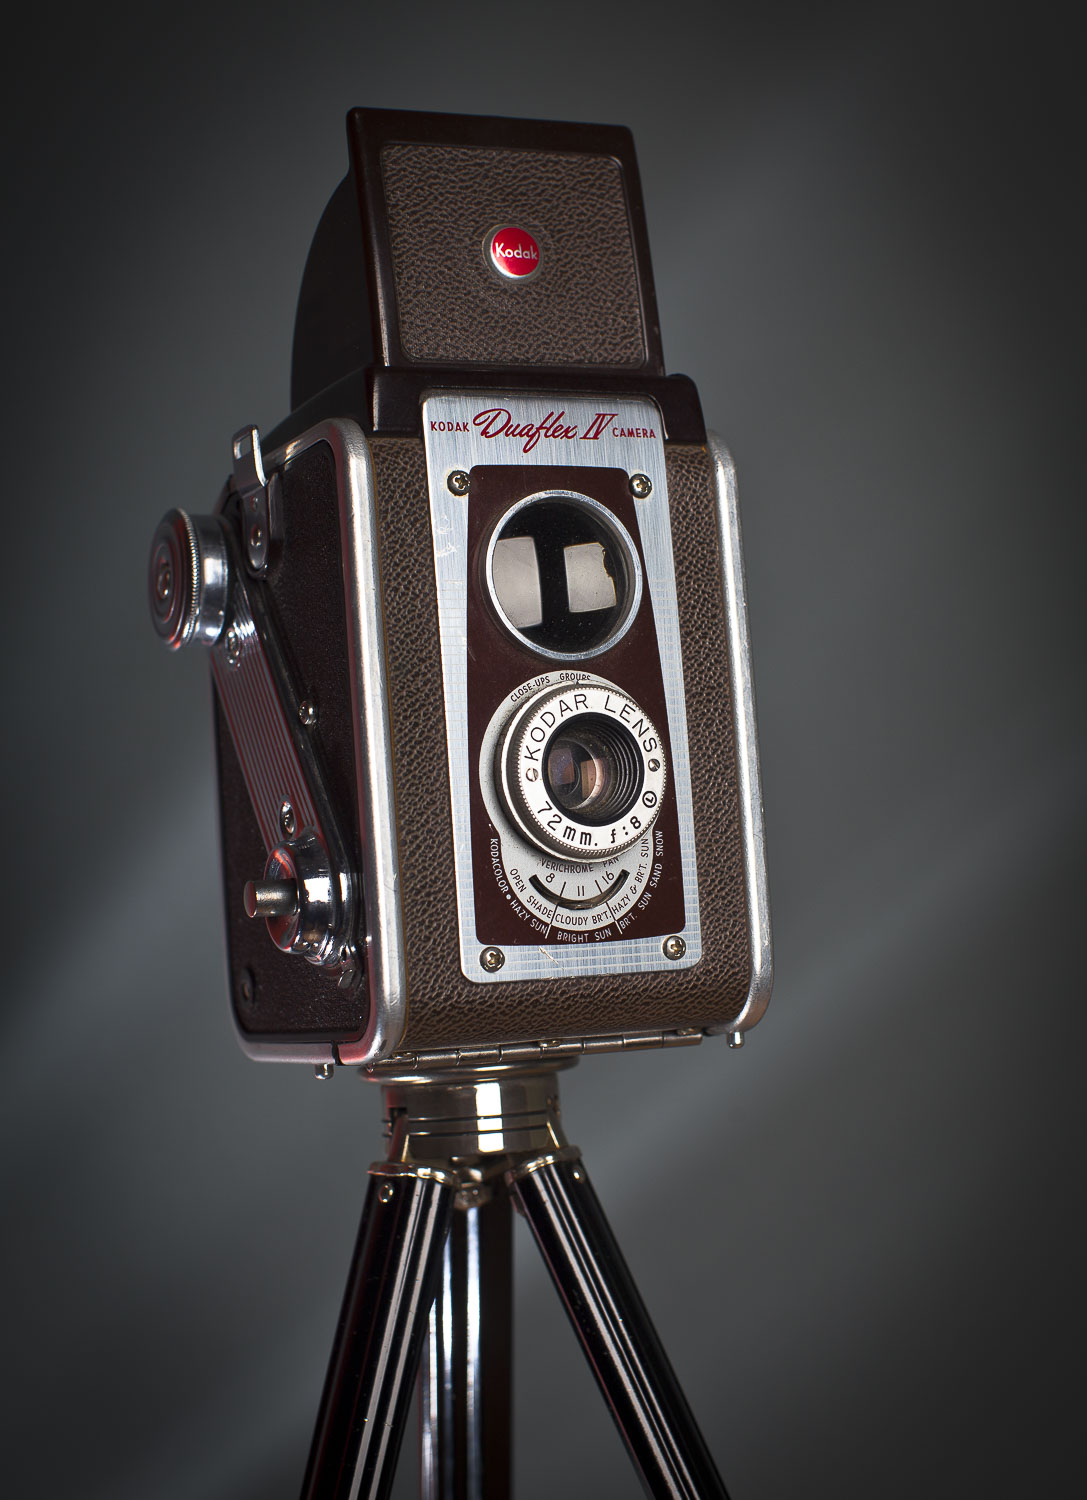 The camera has taken many forms since photography was discovered in the 1840's. Early cameras were hand-built from wood, brass, canvas and leather. With the introduction of roll-film by Kodak in the 1890's, picture-taking became popular and cameras evolved through mass production with ever-improving levels of style and technical innovation.